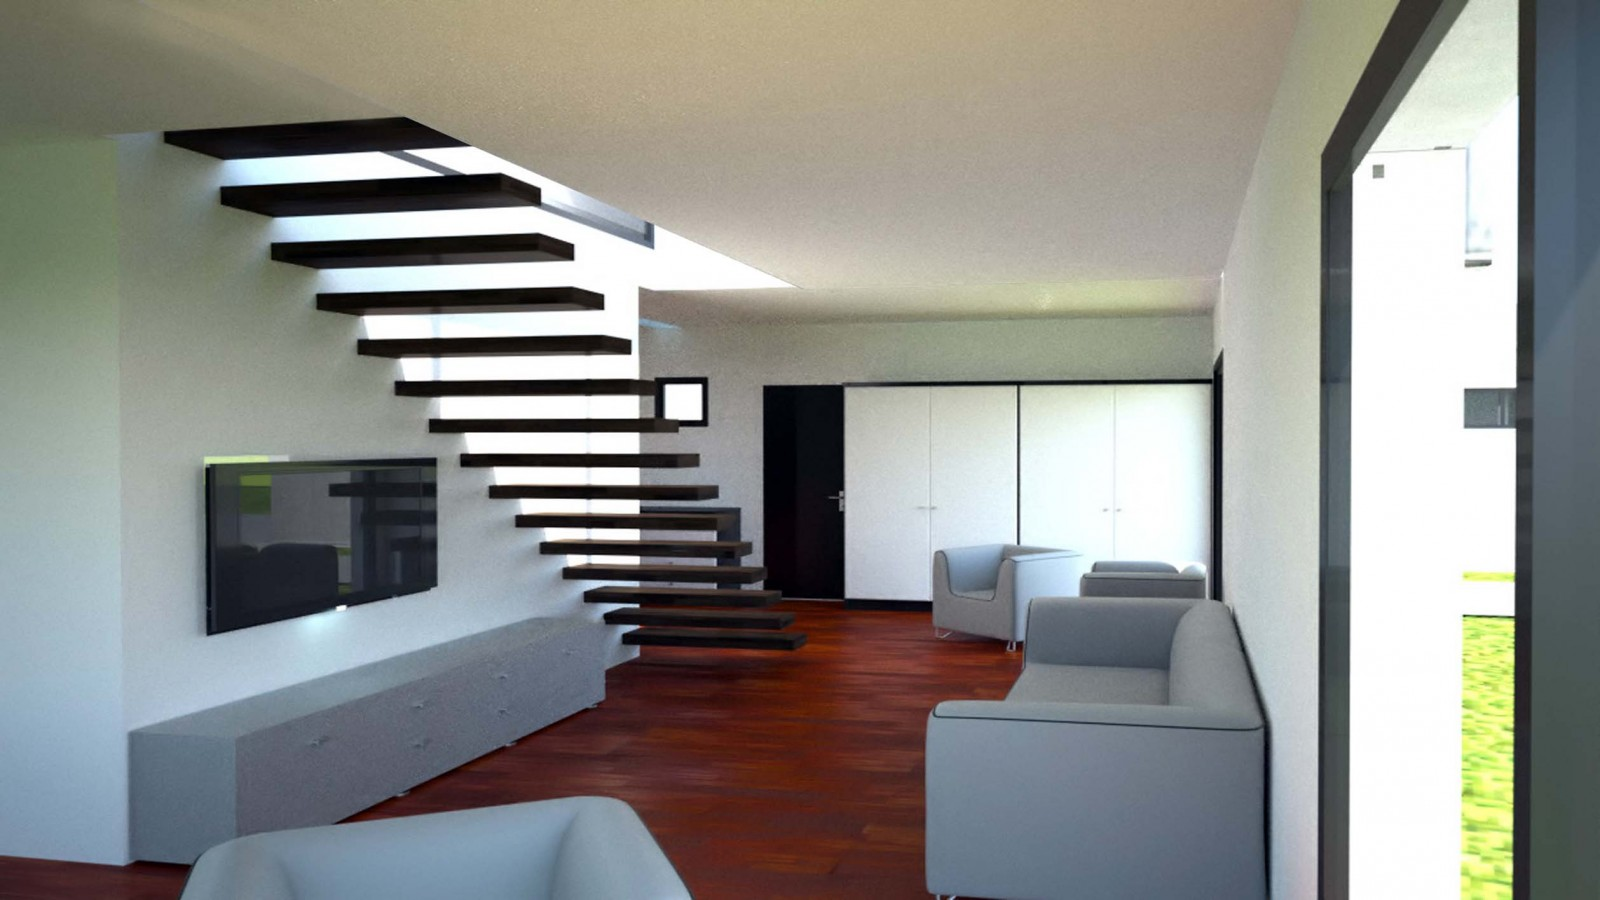 tekart architecture architectes associ s concepteur de maison contemporaine extension de. Black Bedroom Furniture Sets. Home Design Ideas